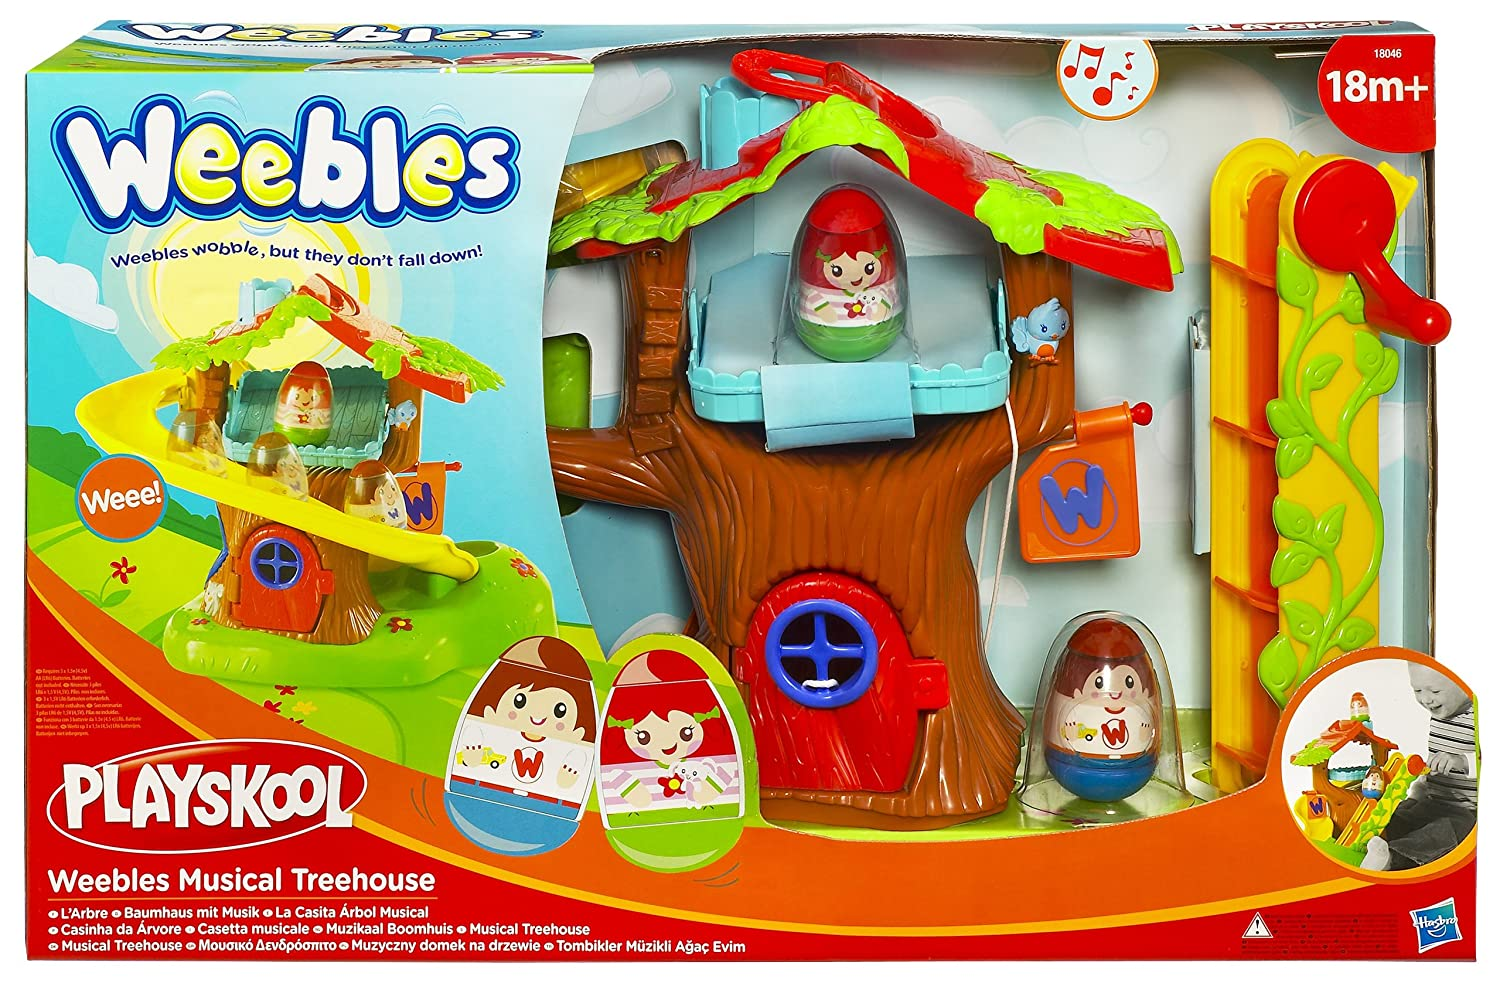 Playskool Weebles Musical Treehouse Part - 18: Amazon UK